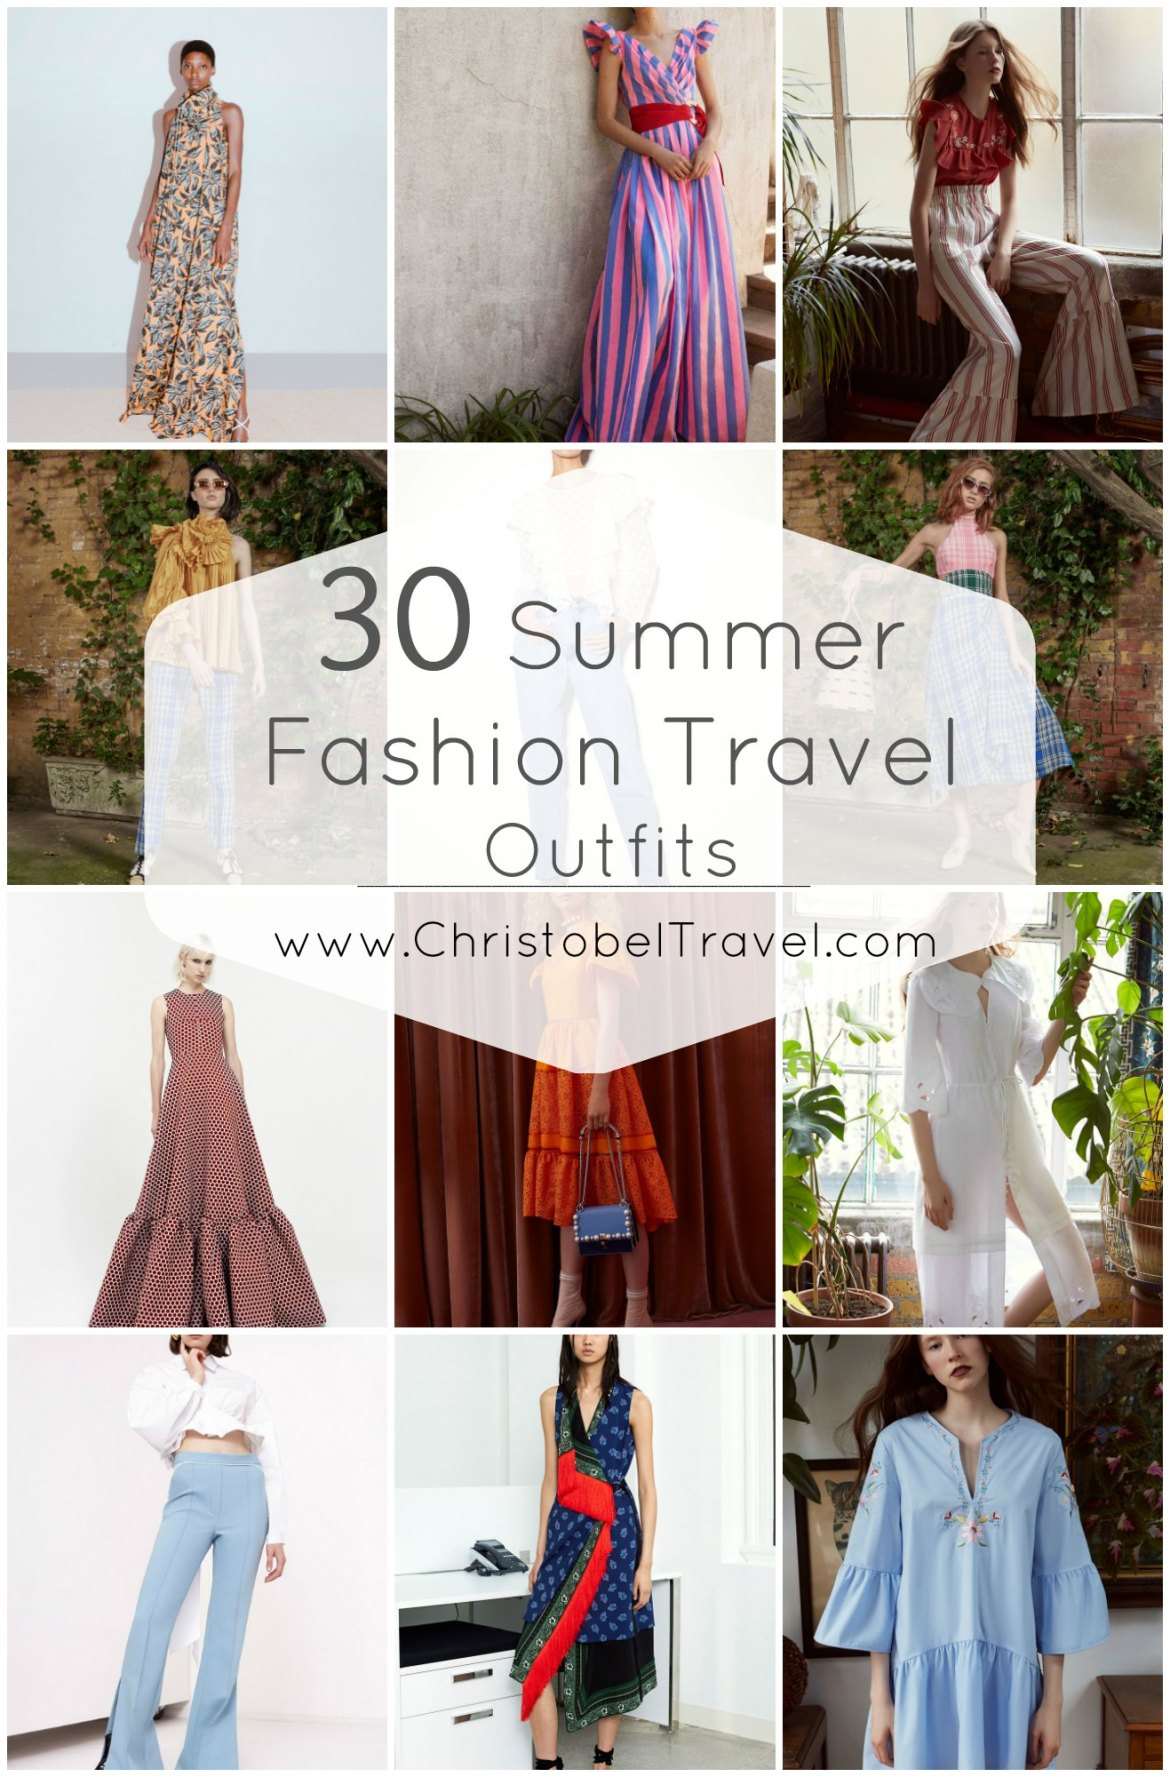 30 Summer Fashion Outfits to Inspire Your Travel Wardrobe - Christobel Travel